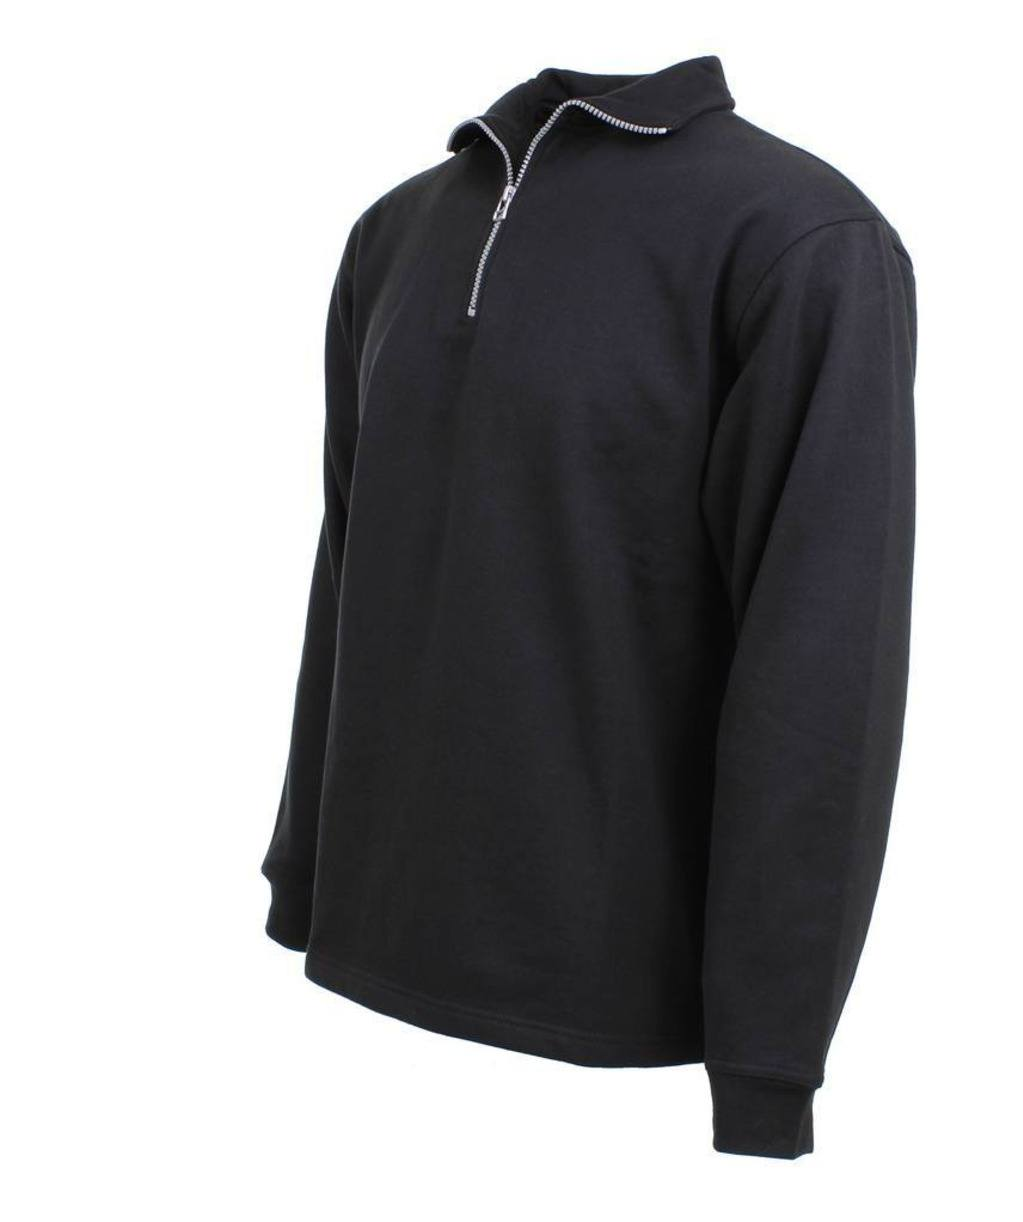 EVERT Zip Sweater